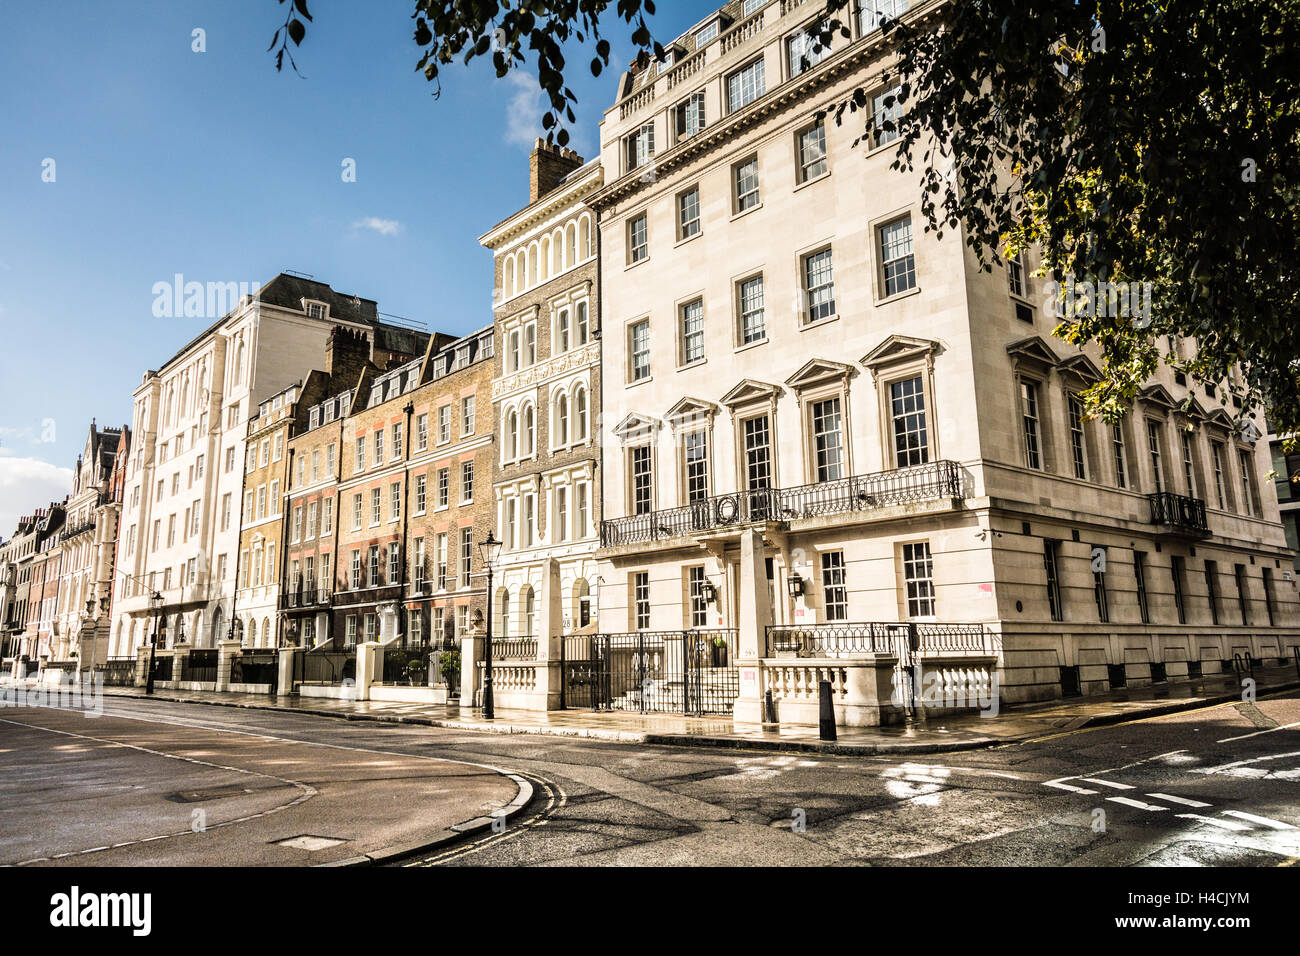 Buildings surrounding Lincoln's Inn Fields, the largest public square in London. Stock Photo